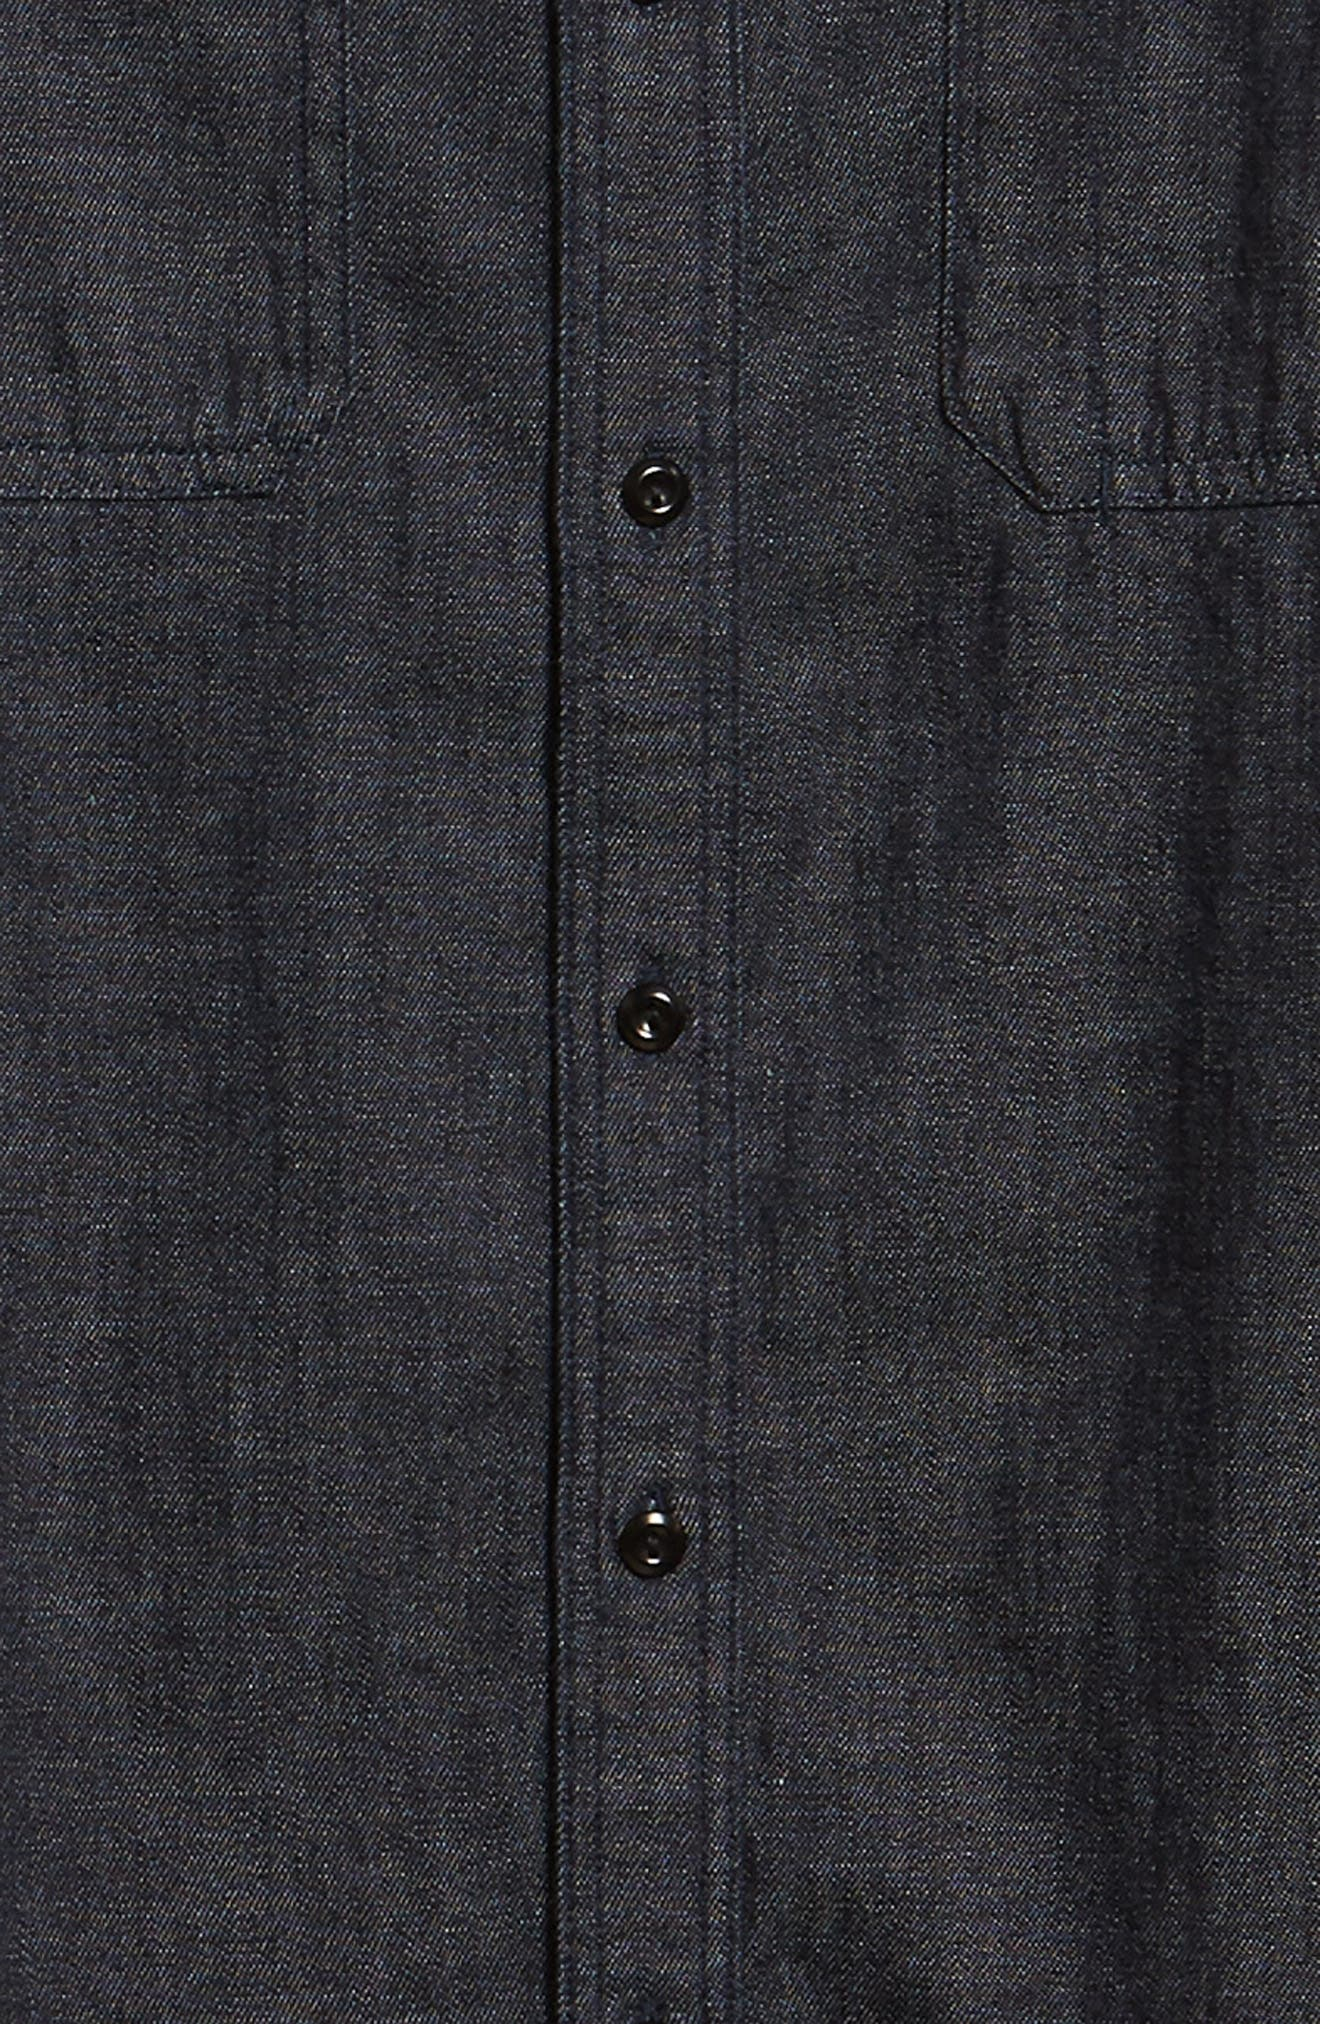 Benning Chambray Slim Fit Utility Shirt,                             Alternate thumbnail 6, color,                             020